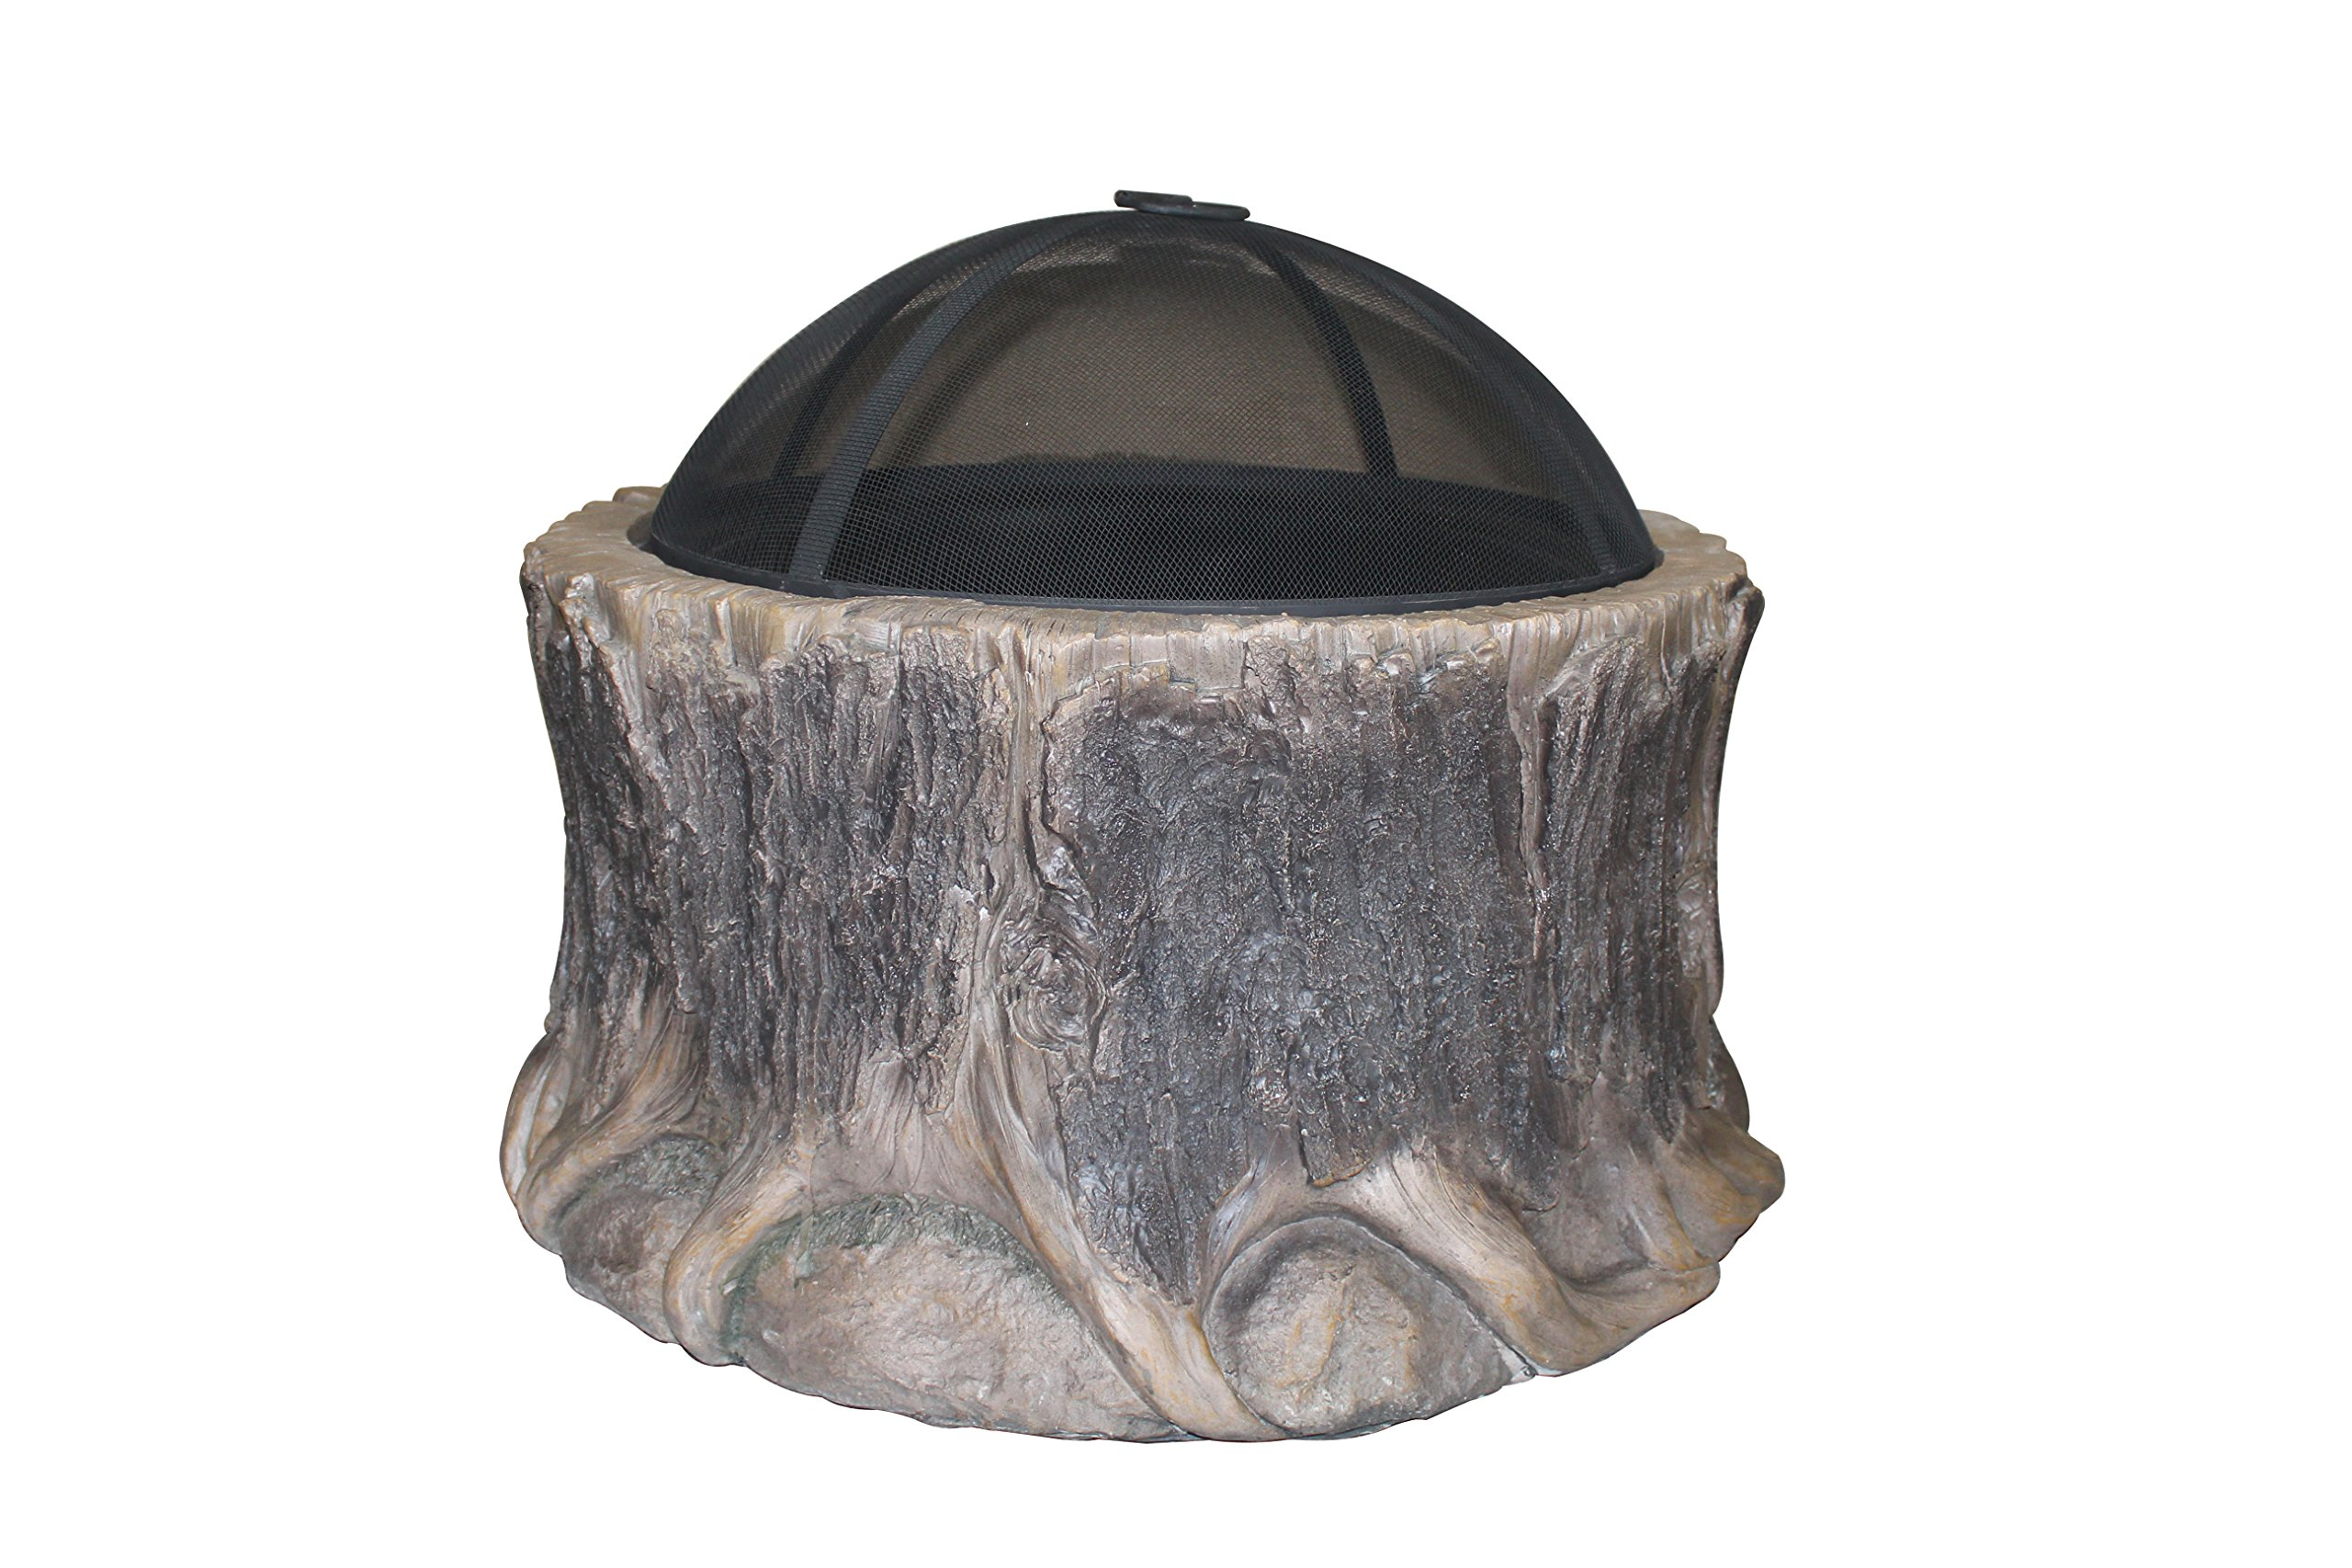 """Peaktop HR28601AA Tree Wood Burning Fire Pit Outdoor Garden Old, 28.0"""", Gray - This fire pit is a wonderful addition to any patio and is sure to provide you and all of your guests with warmth for those mild summer nights. Sturdy light weight concrete construction designed. Spark screen and fire poker included. - patio, outdoor-decor, fire-pits-outdoor-fireplaces - 813pk9EECuL -"""